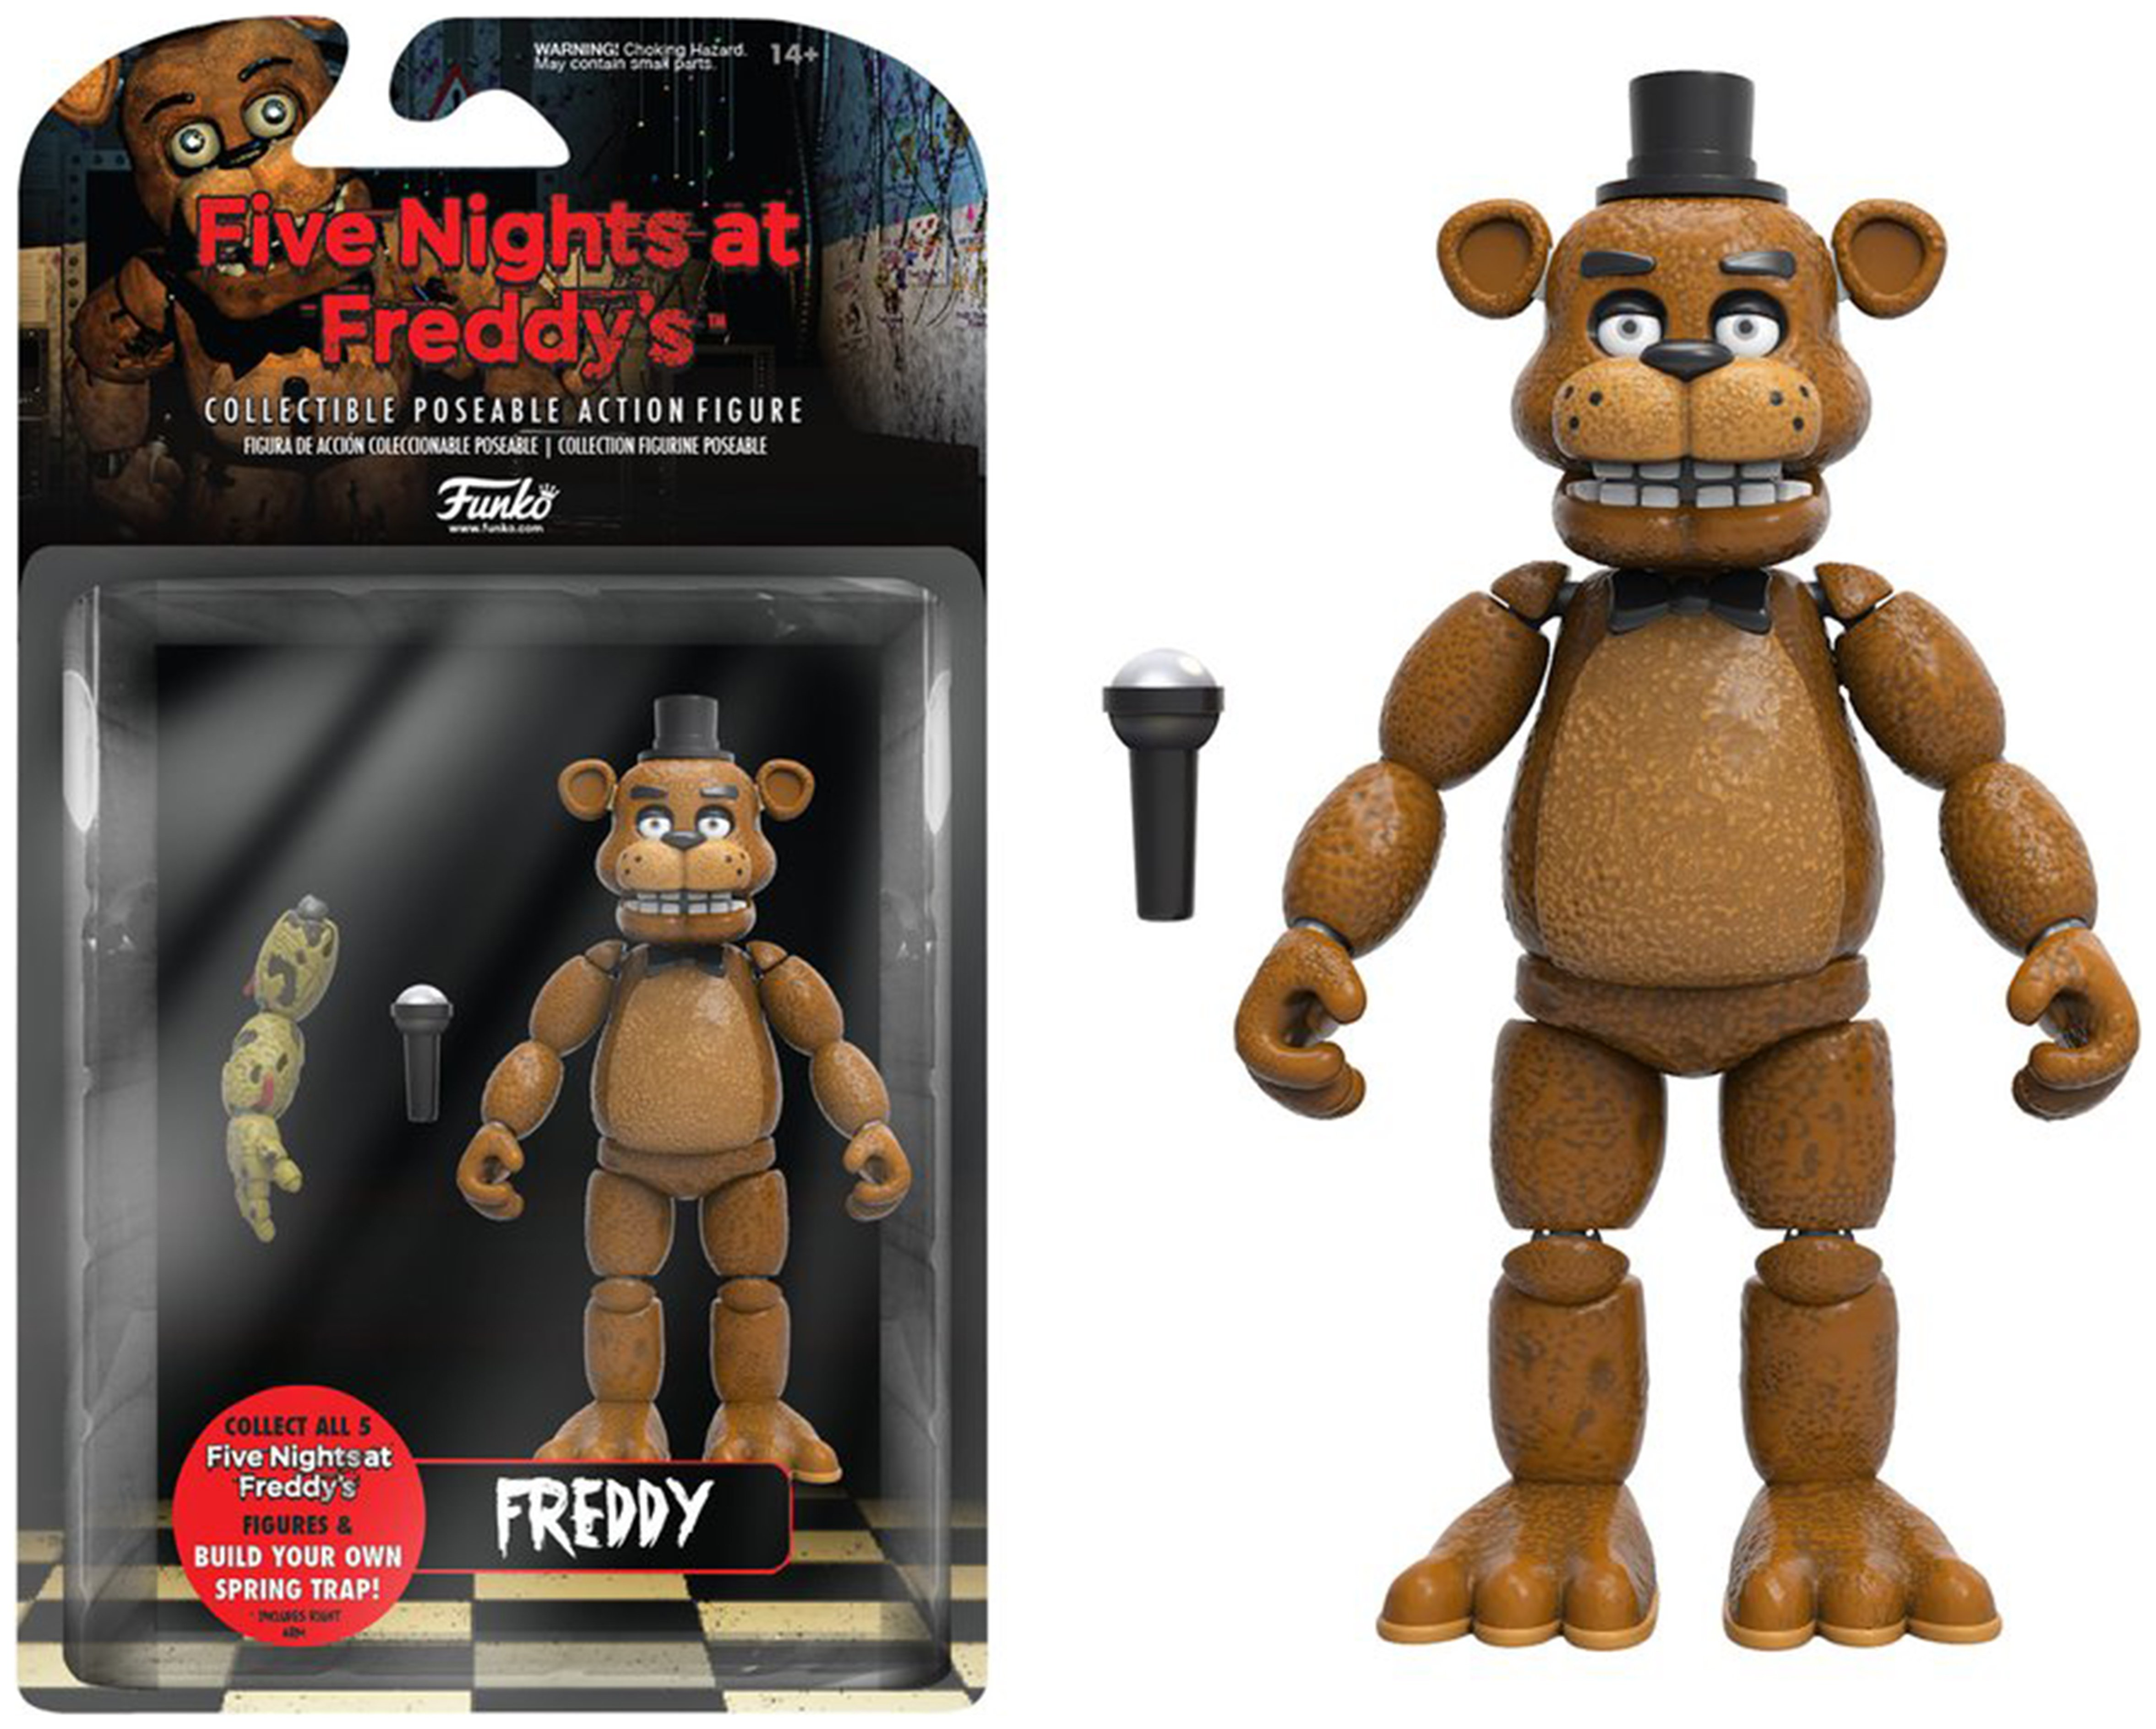 Image of Five Nights at Freddy's Freddy Action Figure - 5 Inch.